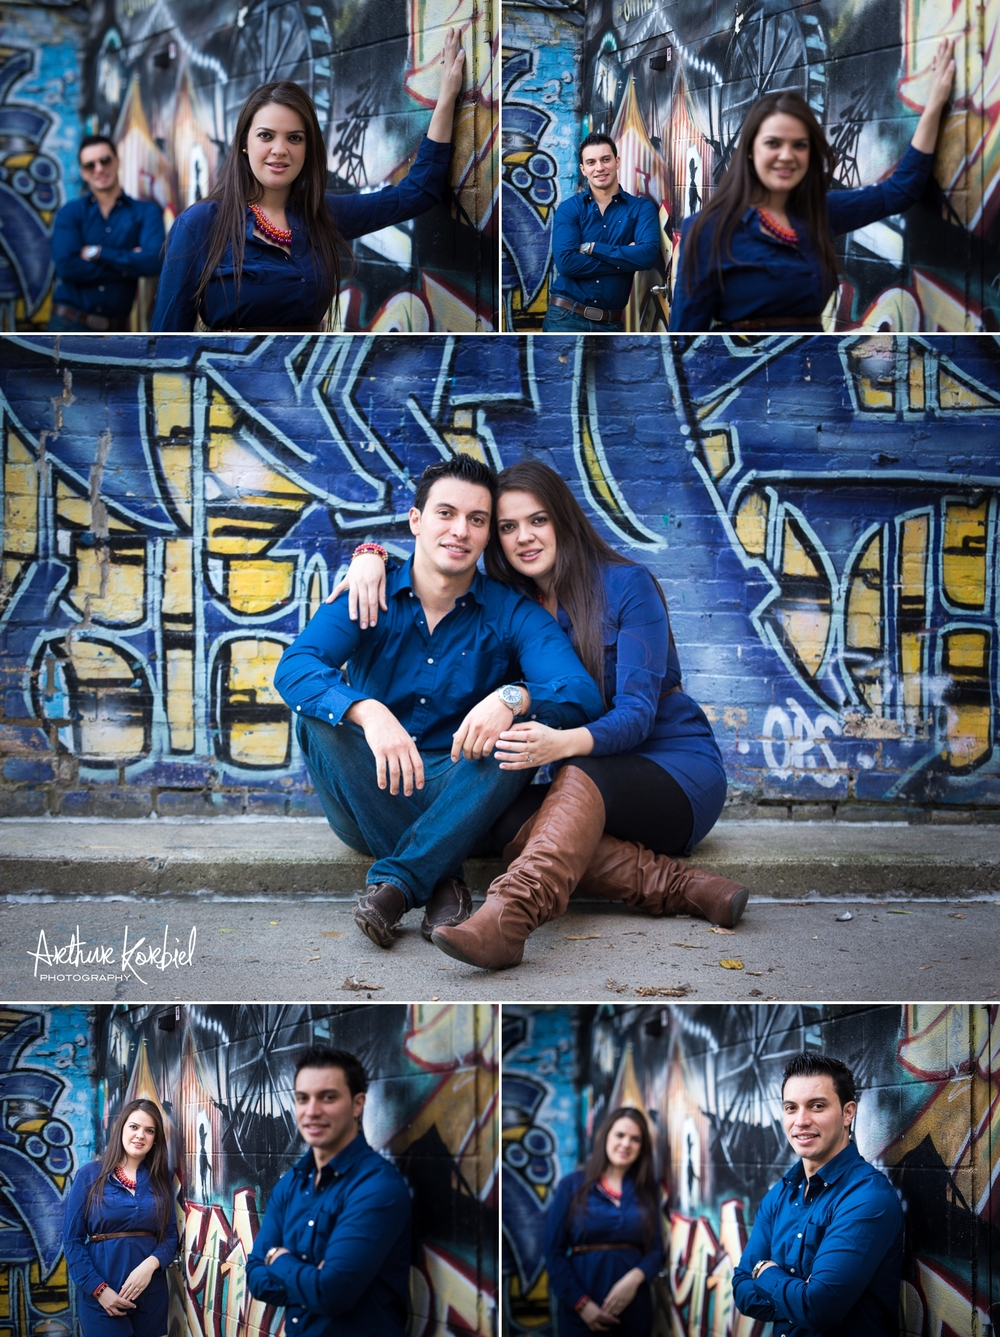 Arthur Korbiel Photography - London Engagement Photographer - Downtown London - Maria & Jose_001.jpg